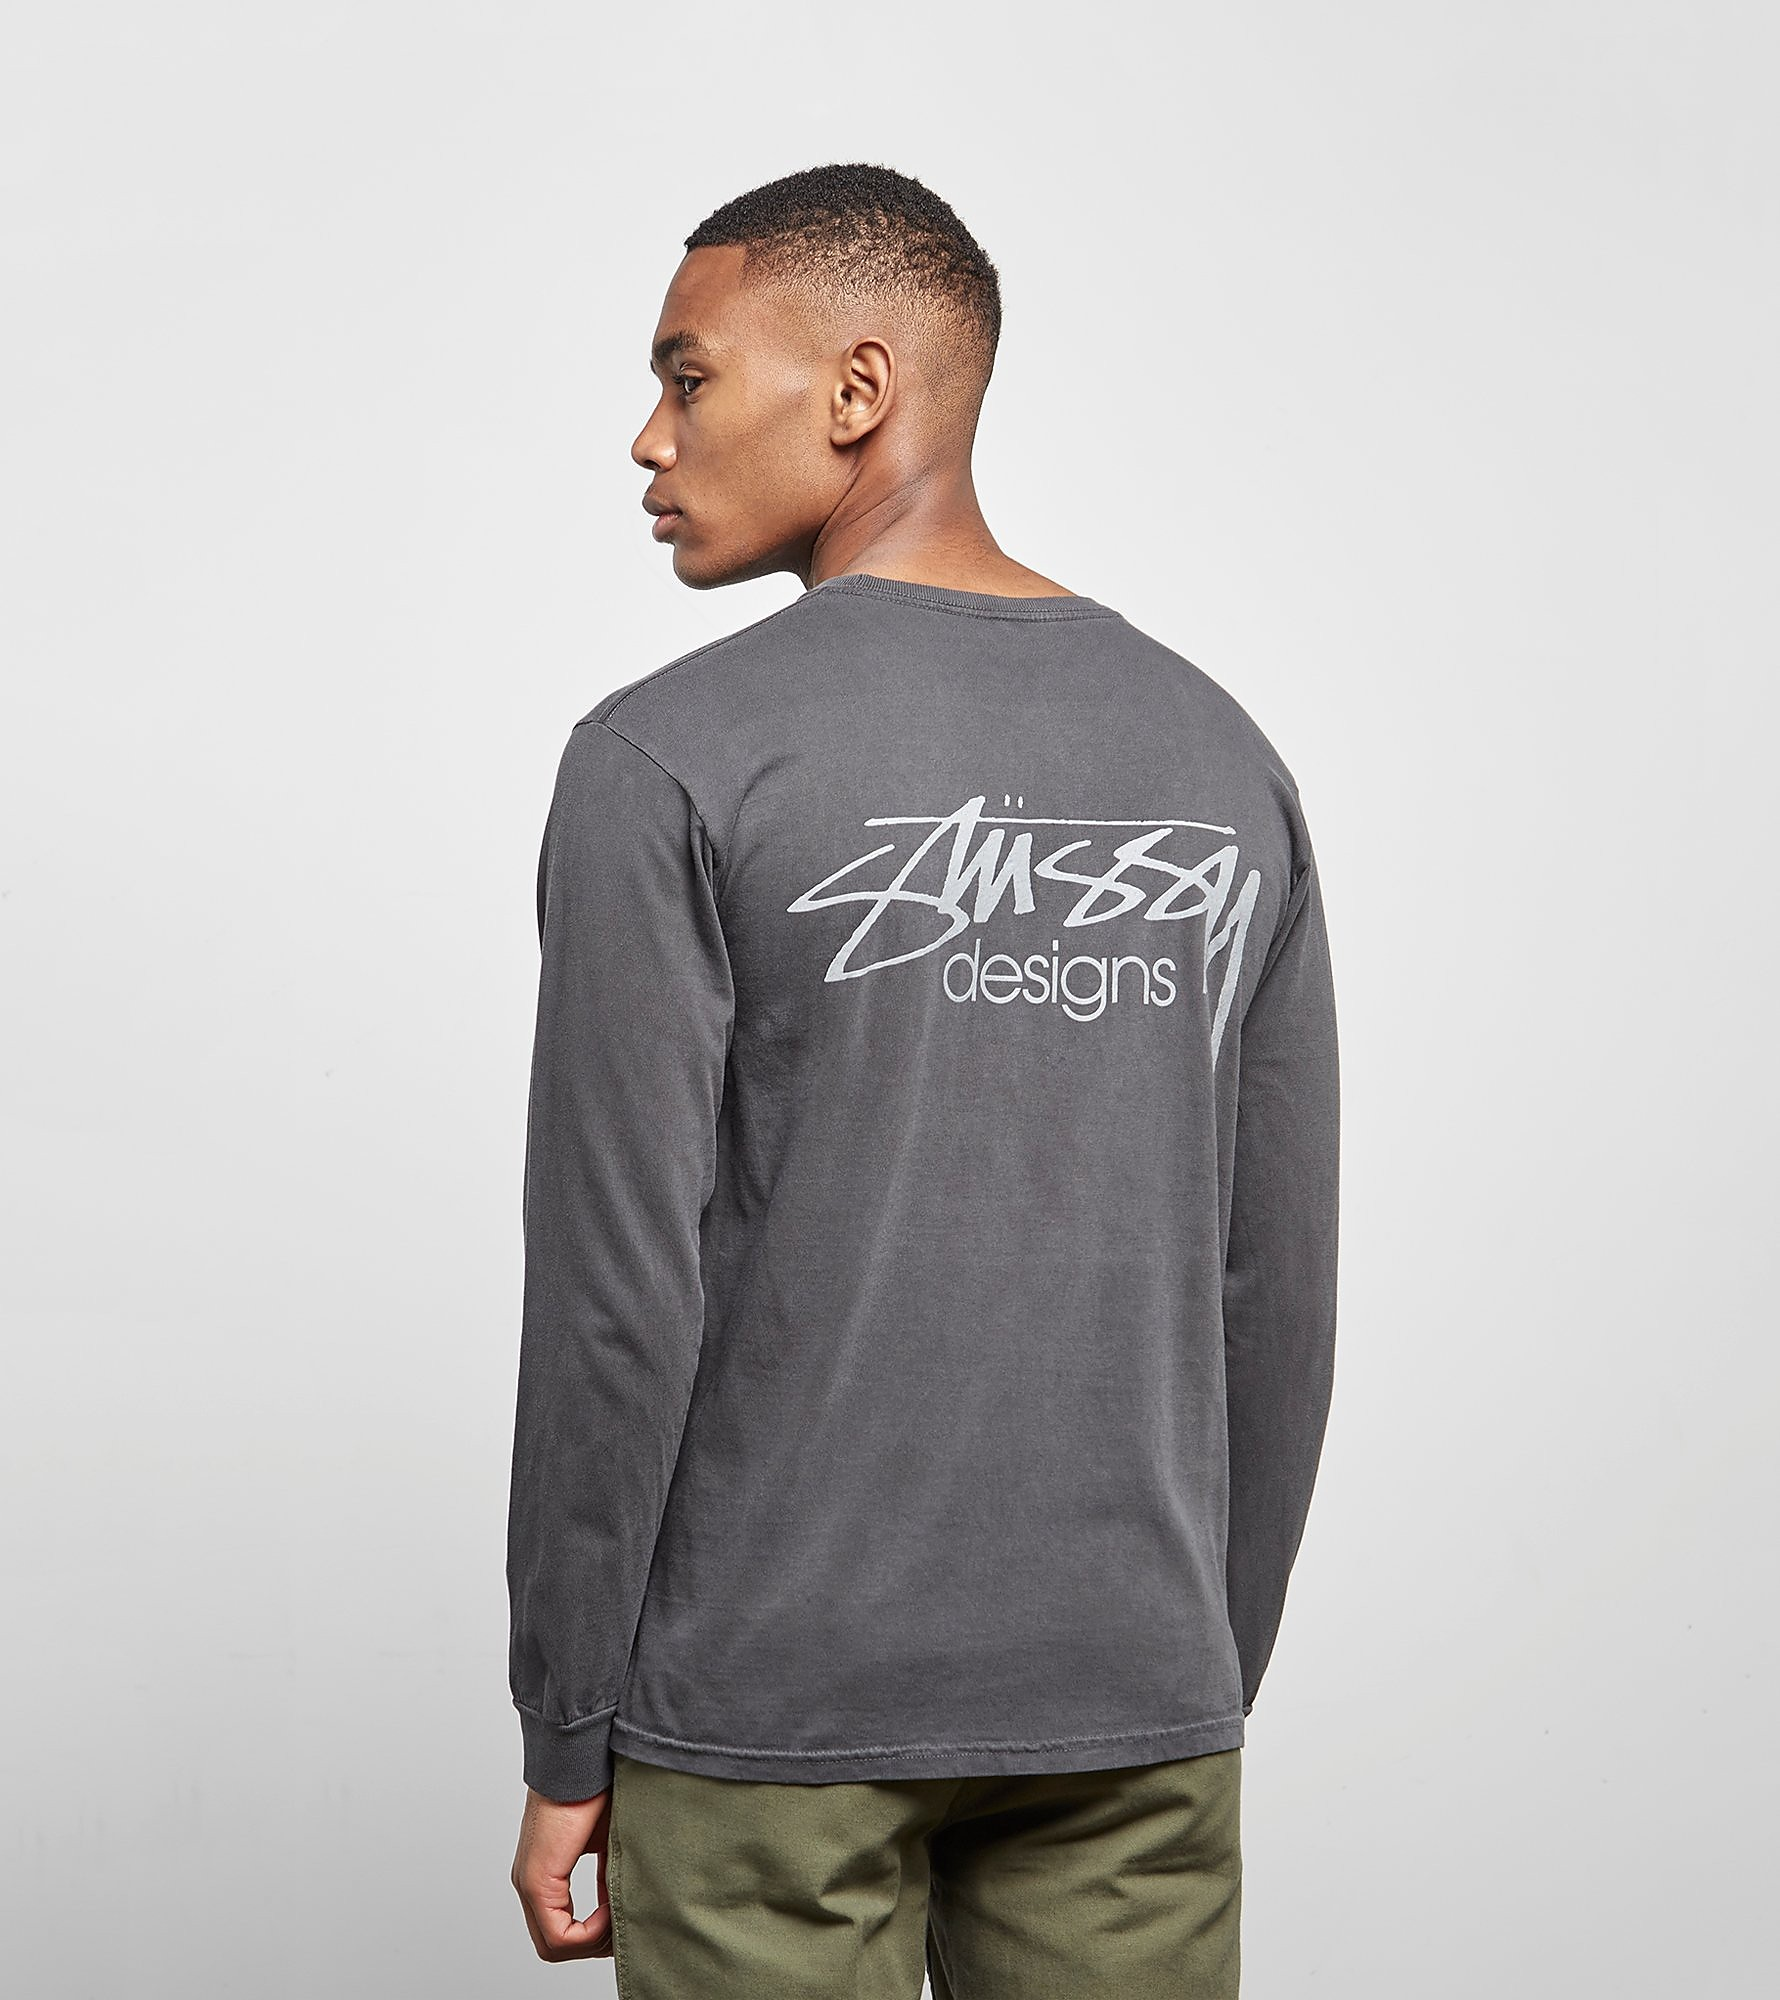 Stussy T-Shirt Manches Longues Designs